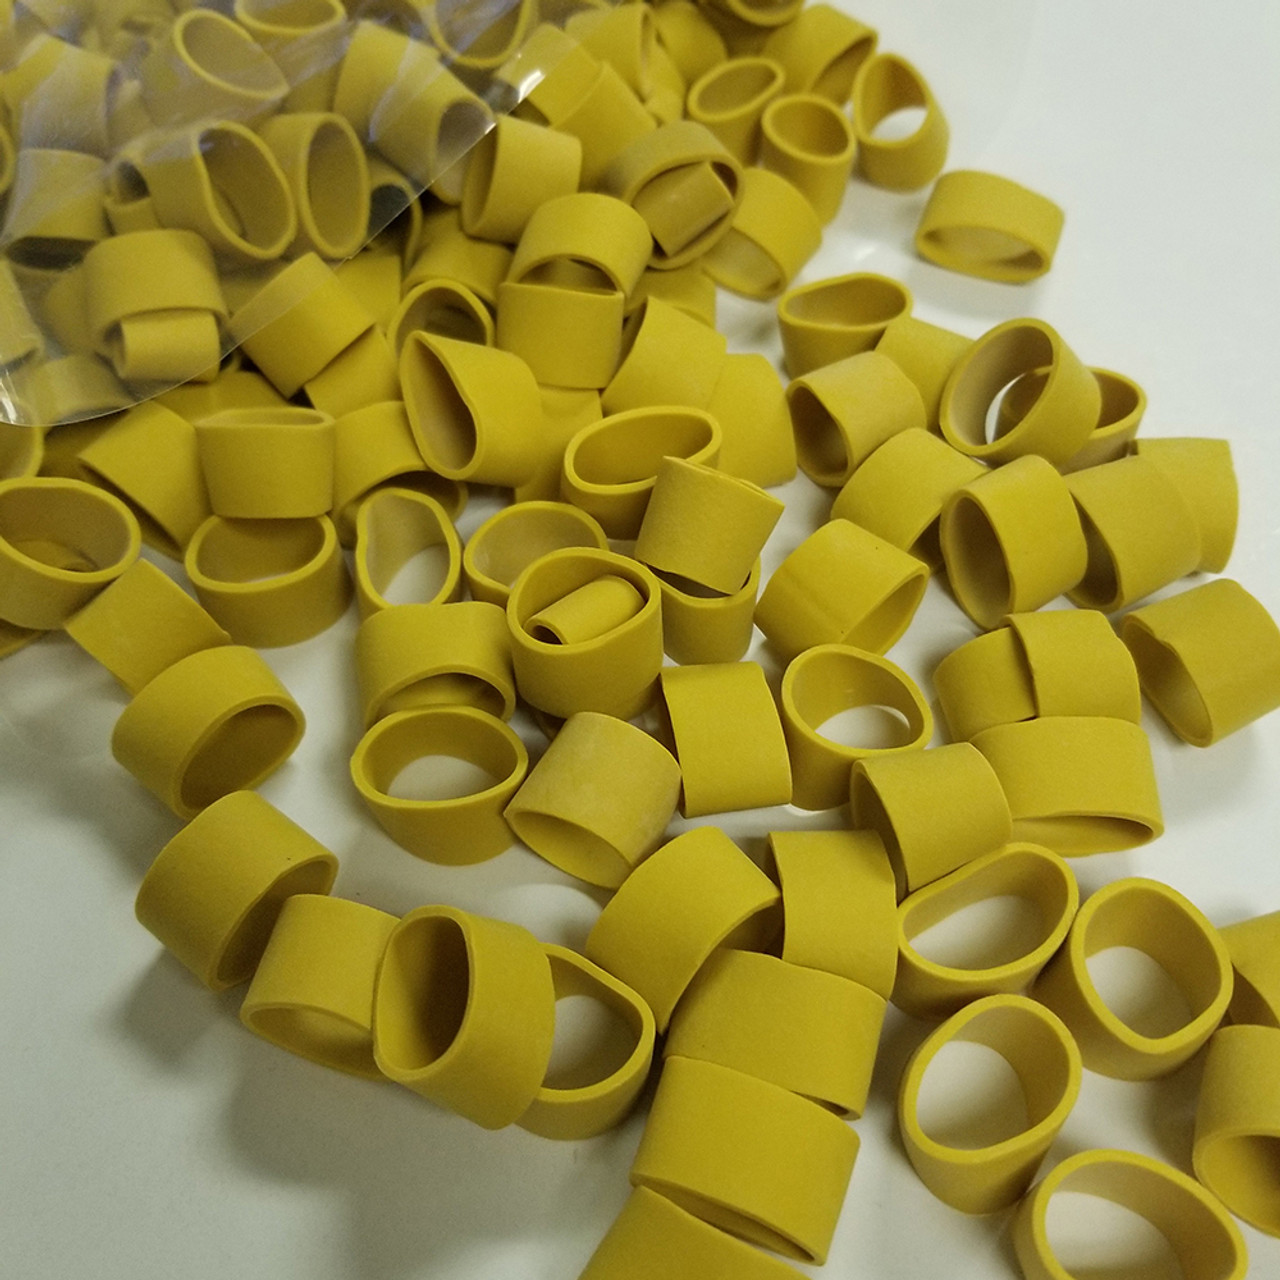 JCS Shedder Lobster Claw Bands and Claw Band Tool Kit 1 LB Bag About 500 PCS. Yellow